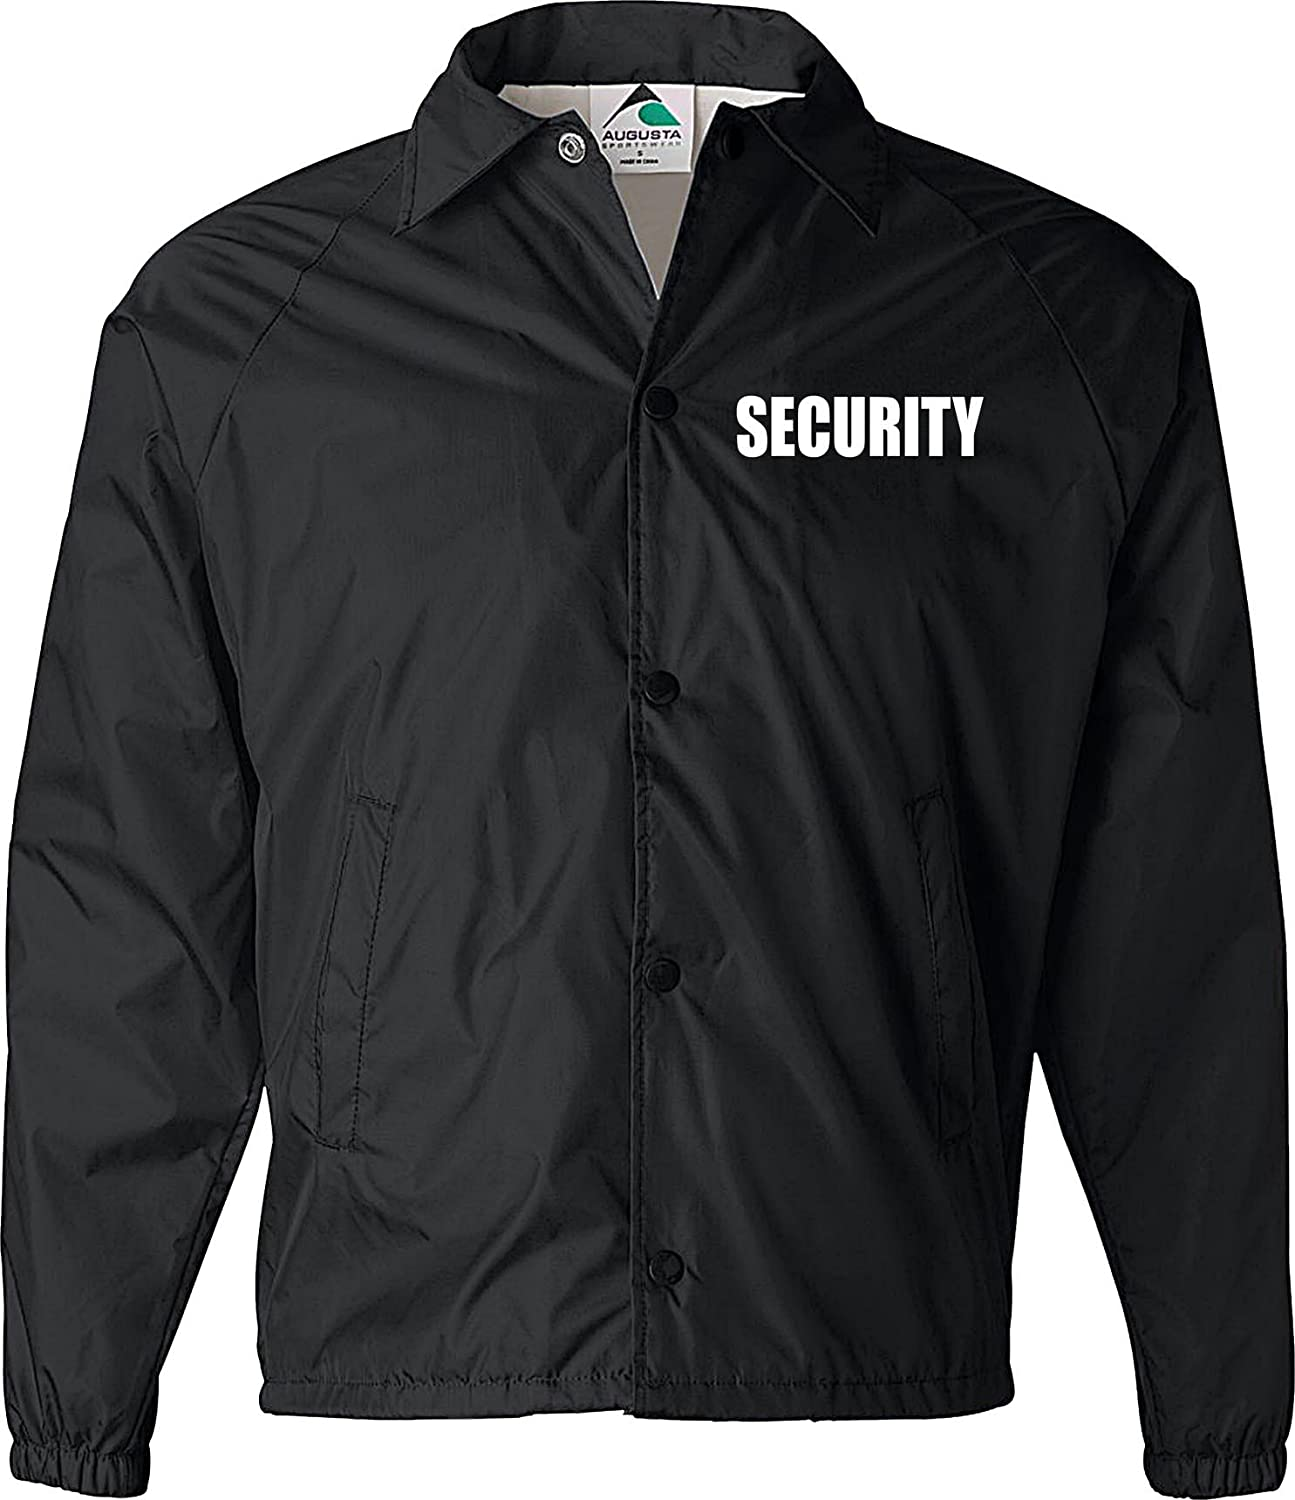 Security jacket, nylon, security guard jacket, law enforcement, windbreaker